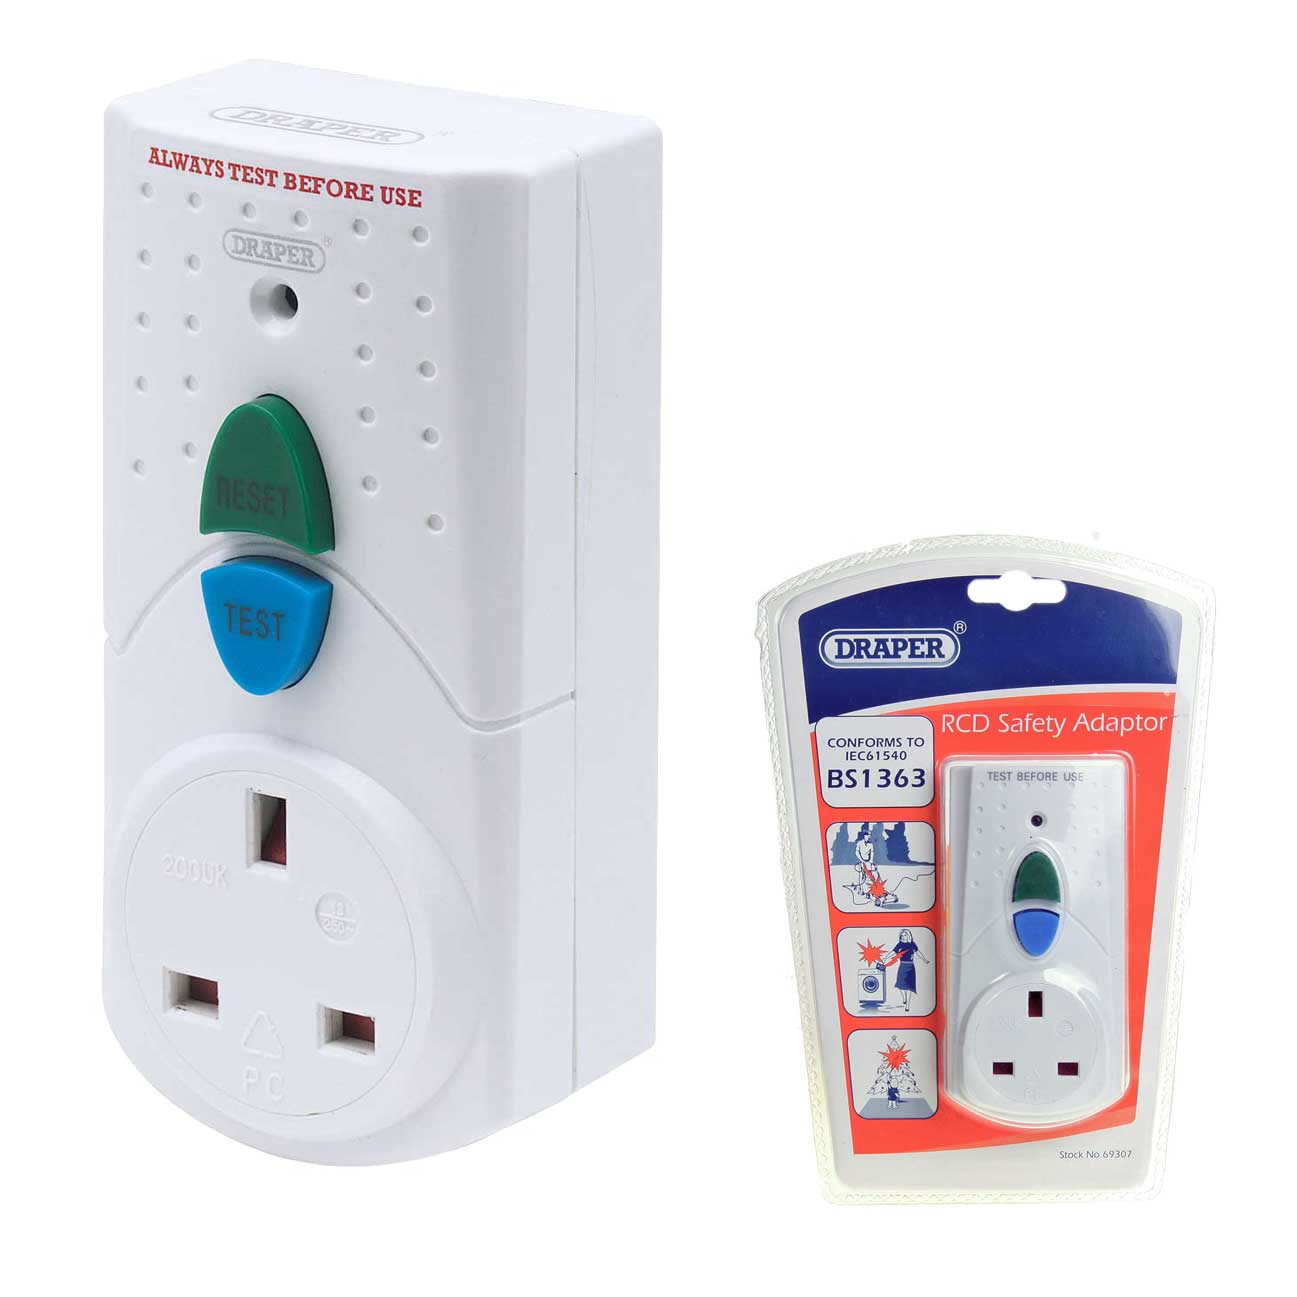 Draper 69307 Rcd3 230v 13a Rcd Adaptor Always Plug Power Tools Into A Rcb Circuit Breaker As Safety